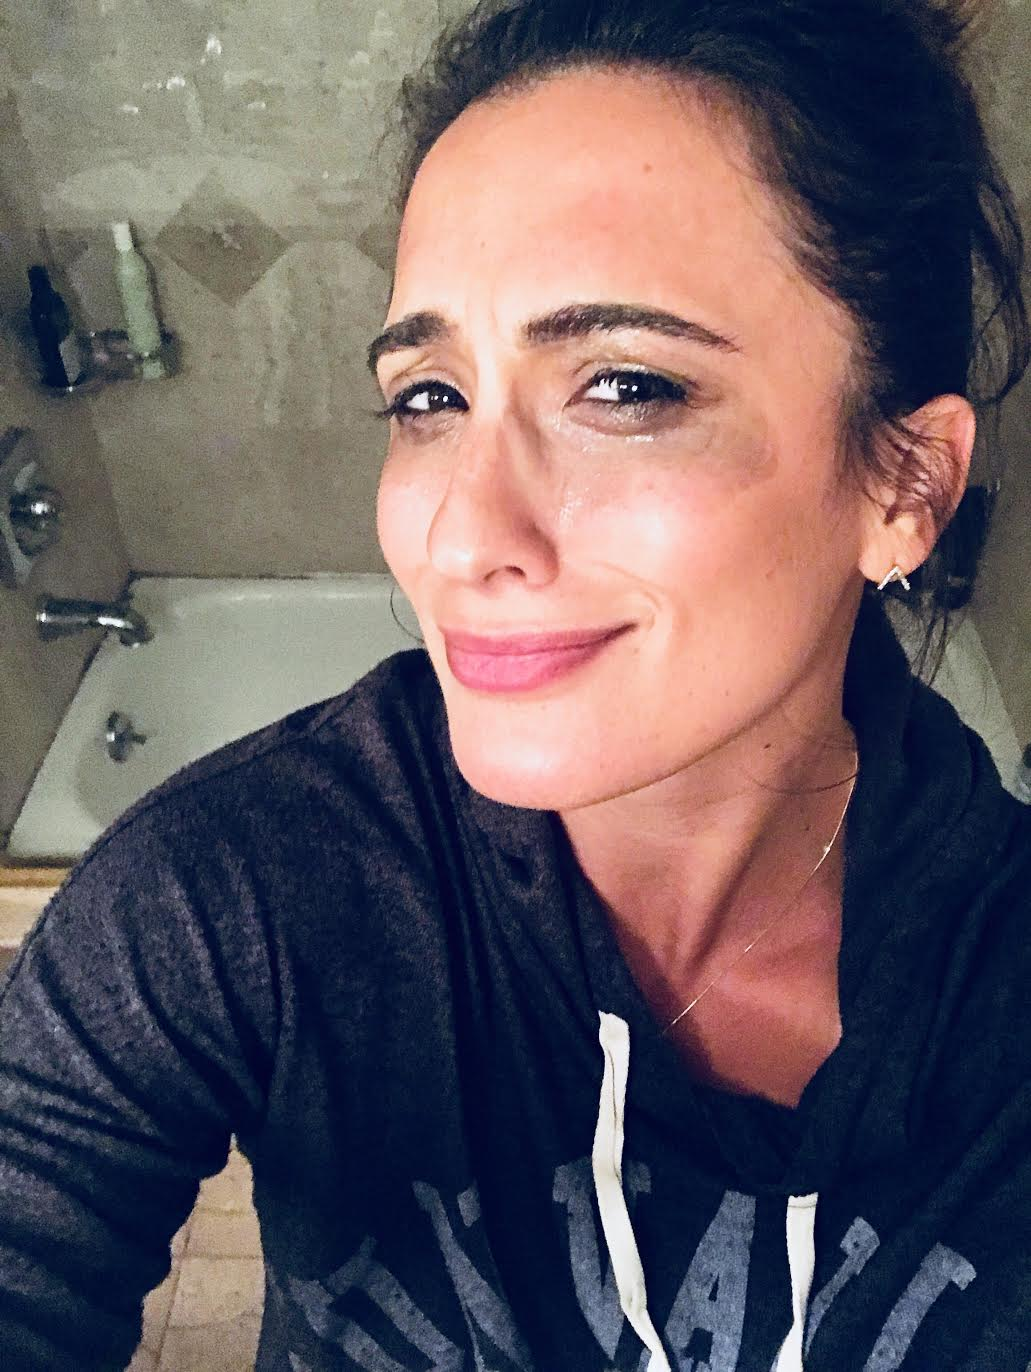 #SkinBabe Giuliana Cortese uses straight up coconut oil to take off her make-up after a shoot - a little messy but leaves her skin feeling awesome!